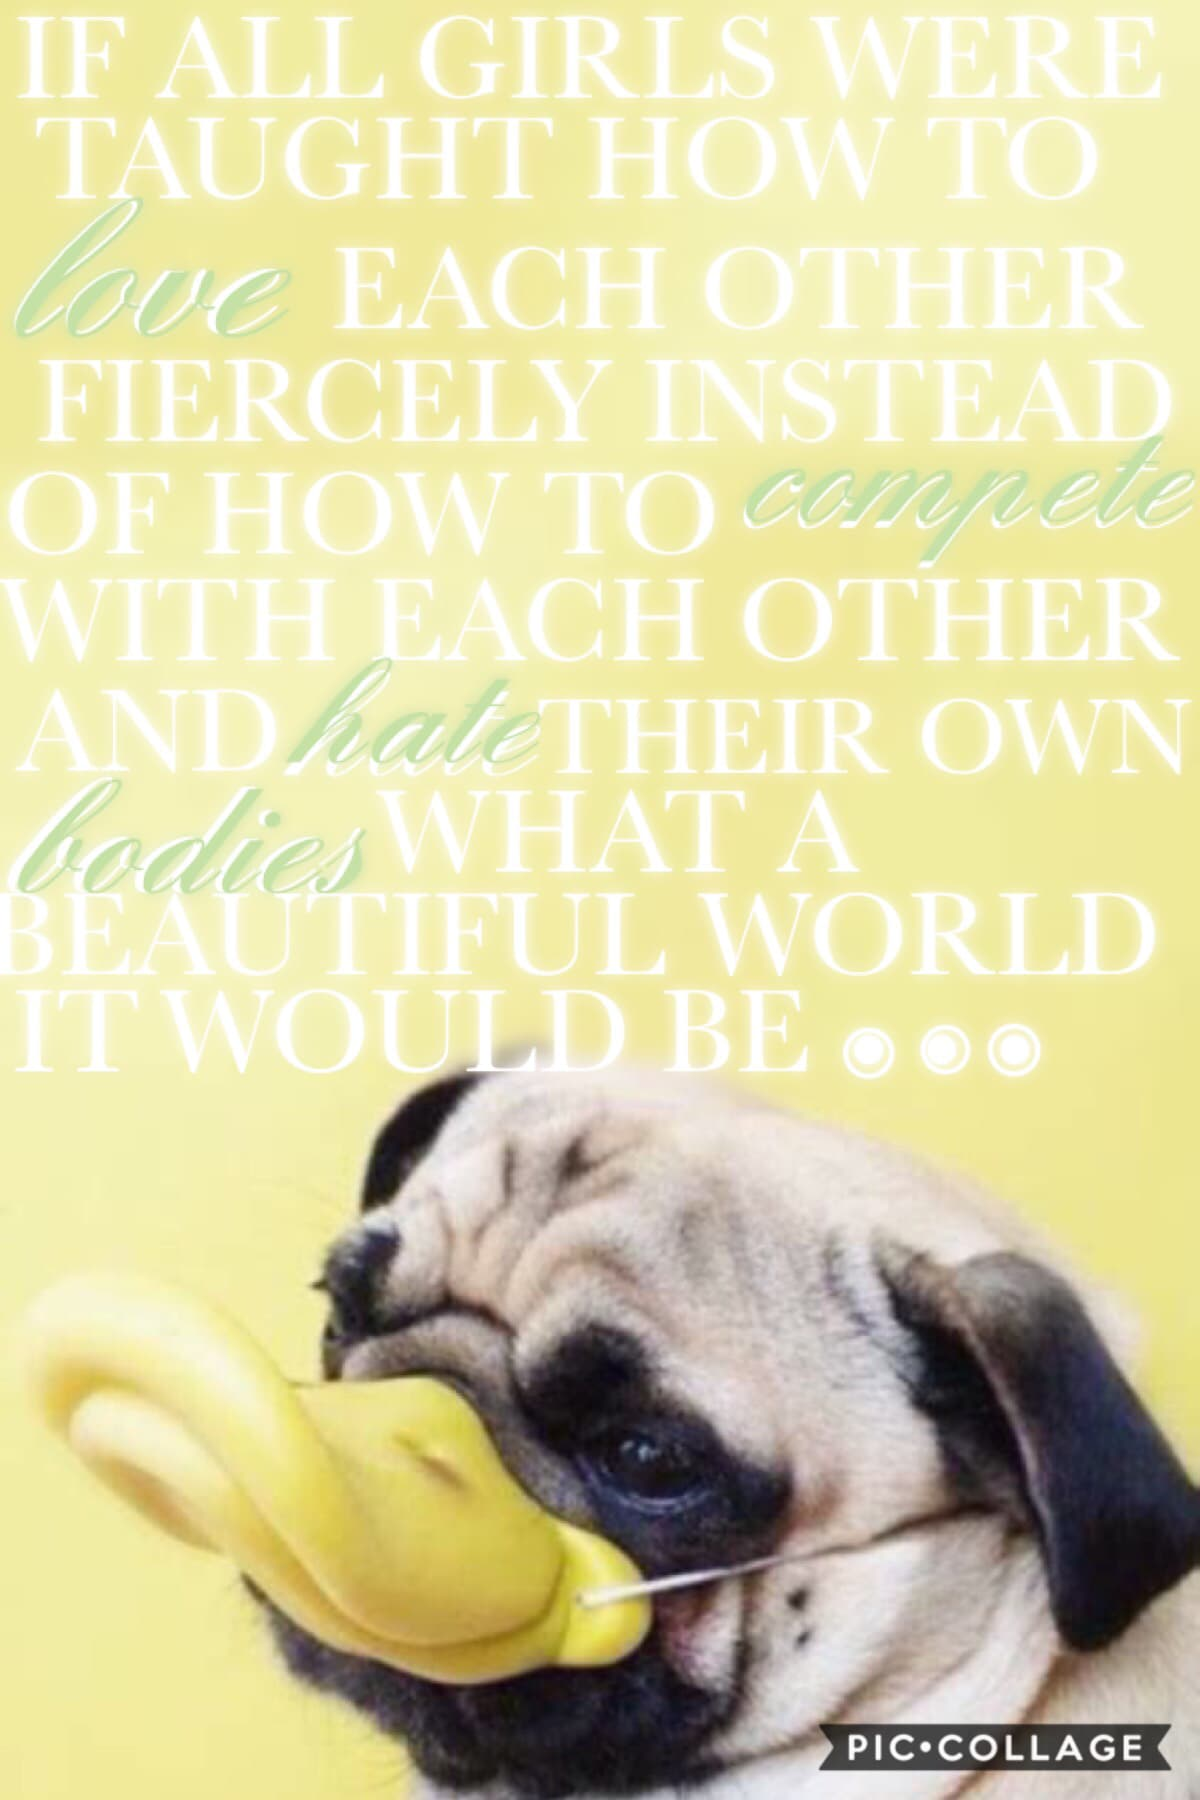 Inspired by the beautiful @abstract!! I love this quote sooo much omg 💗💗 and the pug is adorable !!